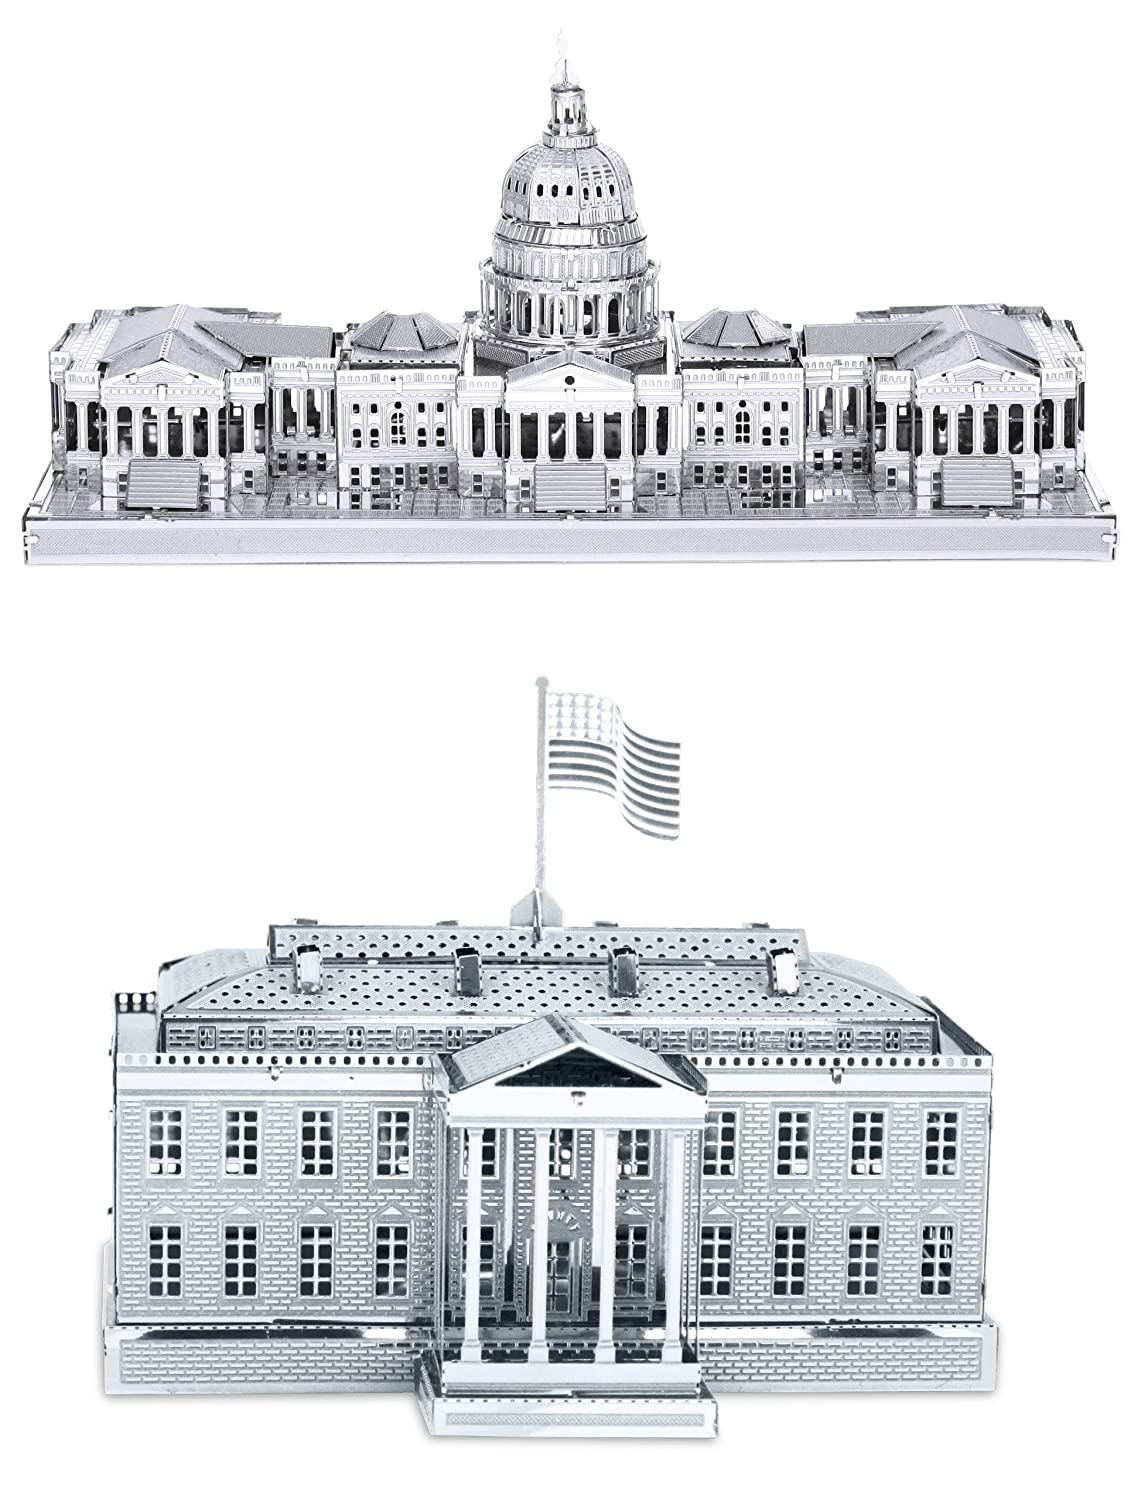 U.S Metal Earth 3D Laser Cut Models Capitol Building AND White House = SET OF 2 Fascinations SG/_B00J7WPH7S/_US